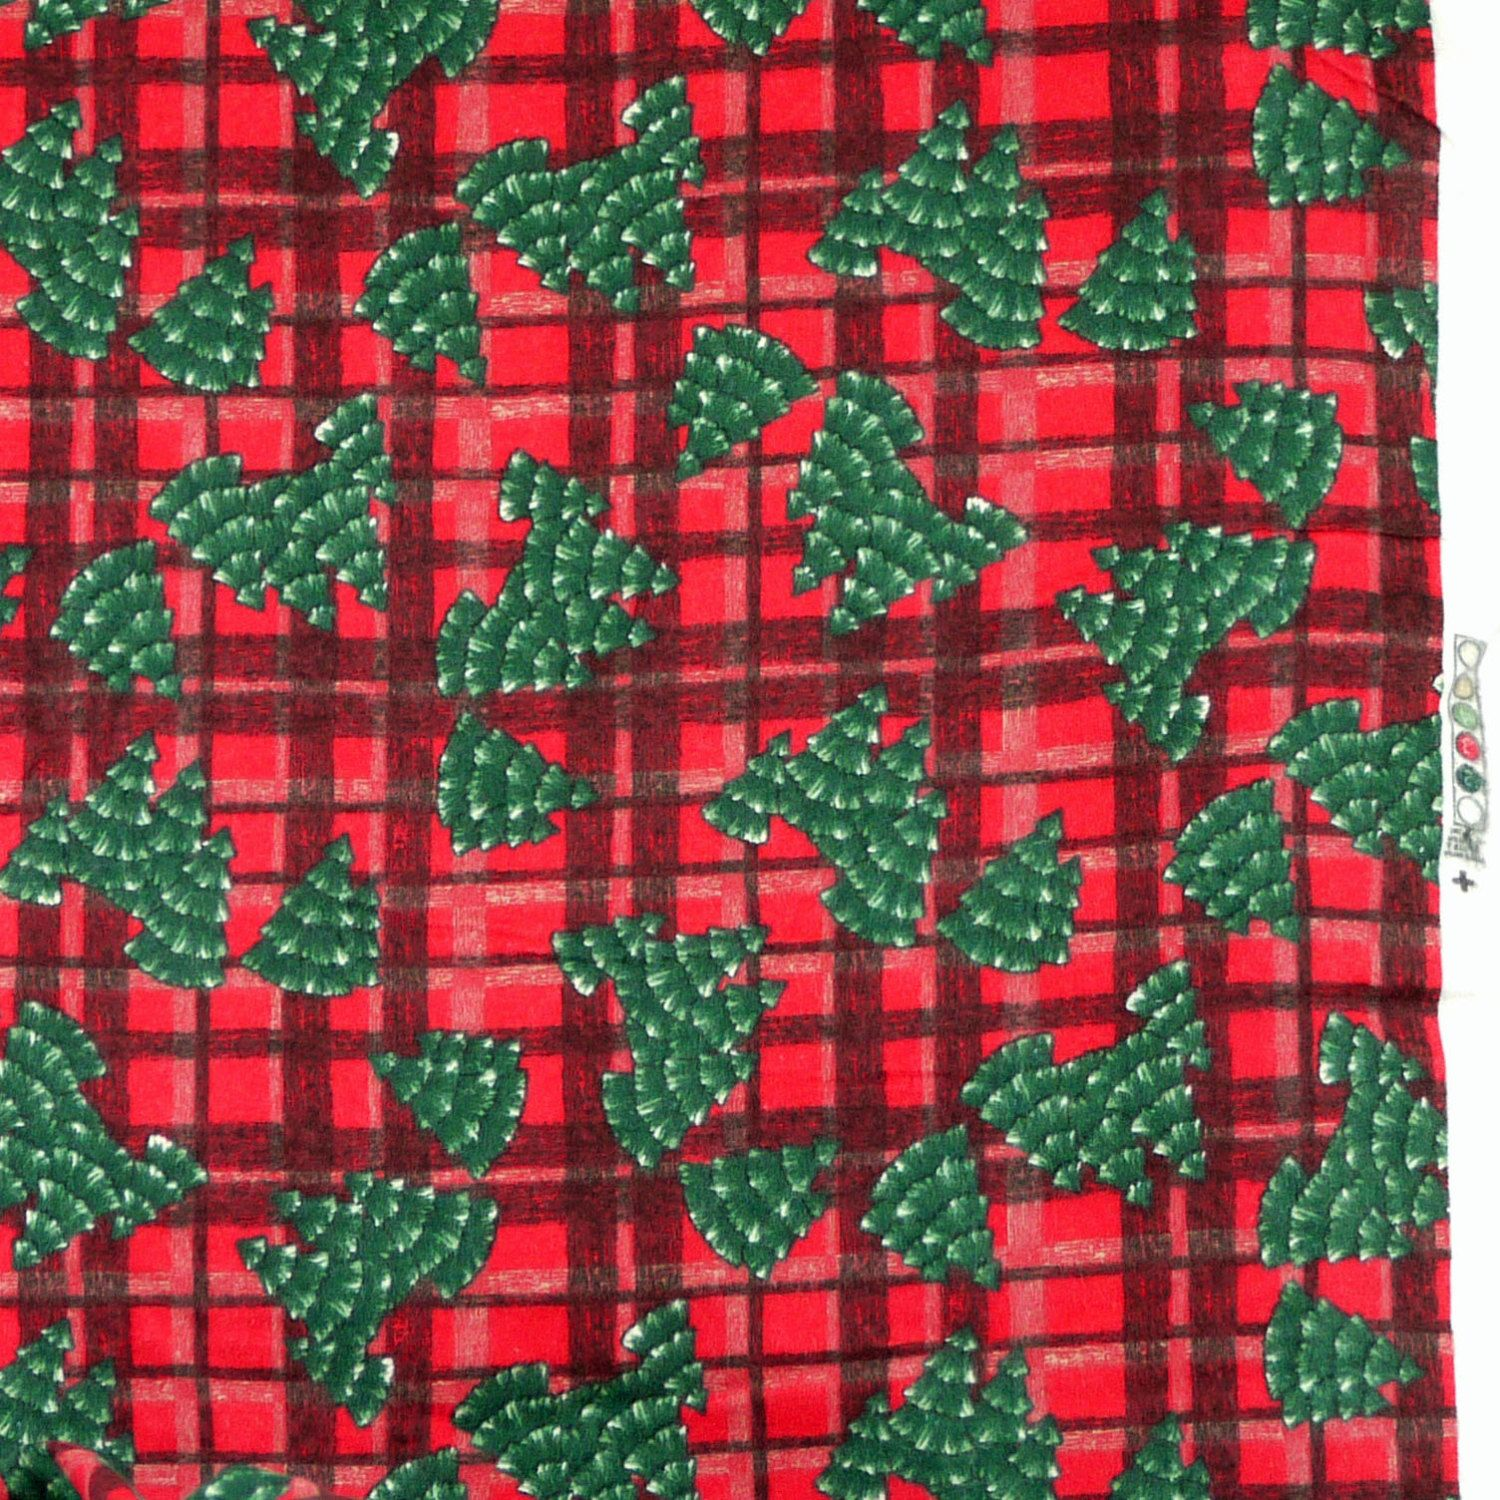 Quilting Flannel, Christmas Print Fabric, Black and Red Plaid ... : quilting flannel fabric - Adamdwight.com